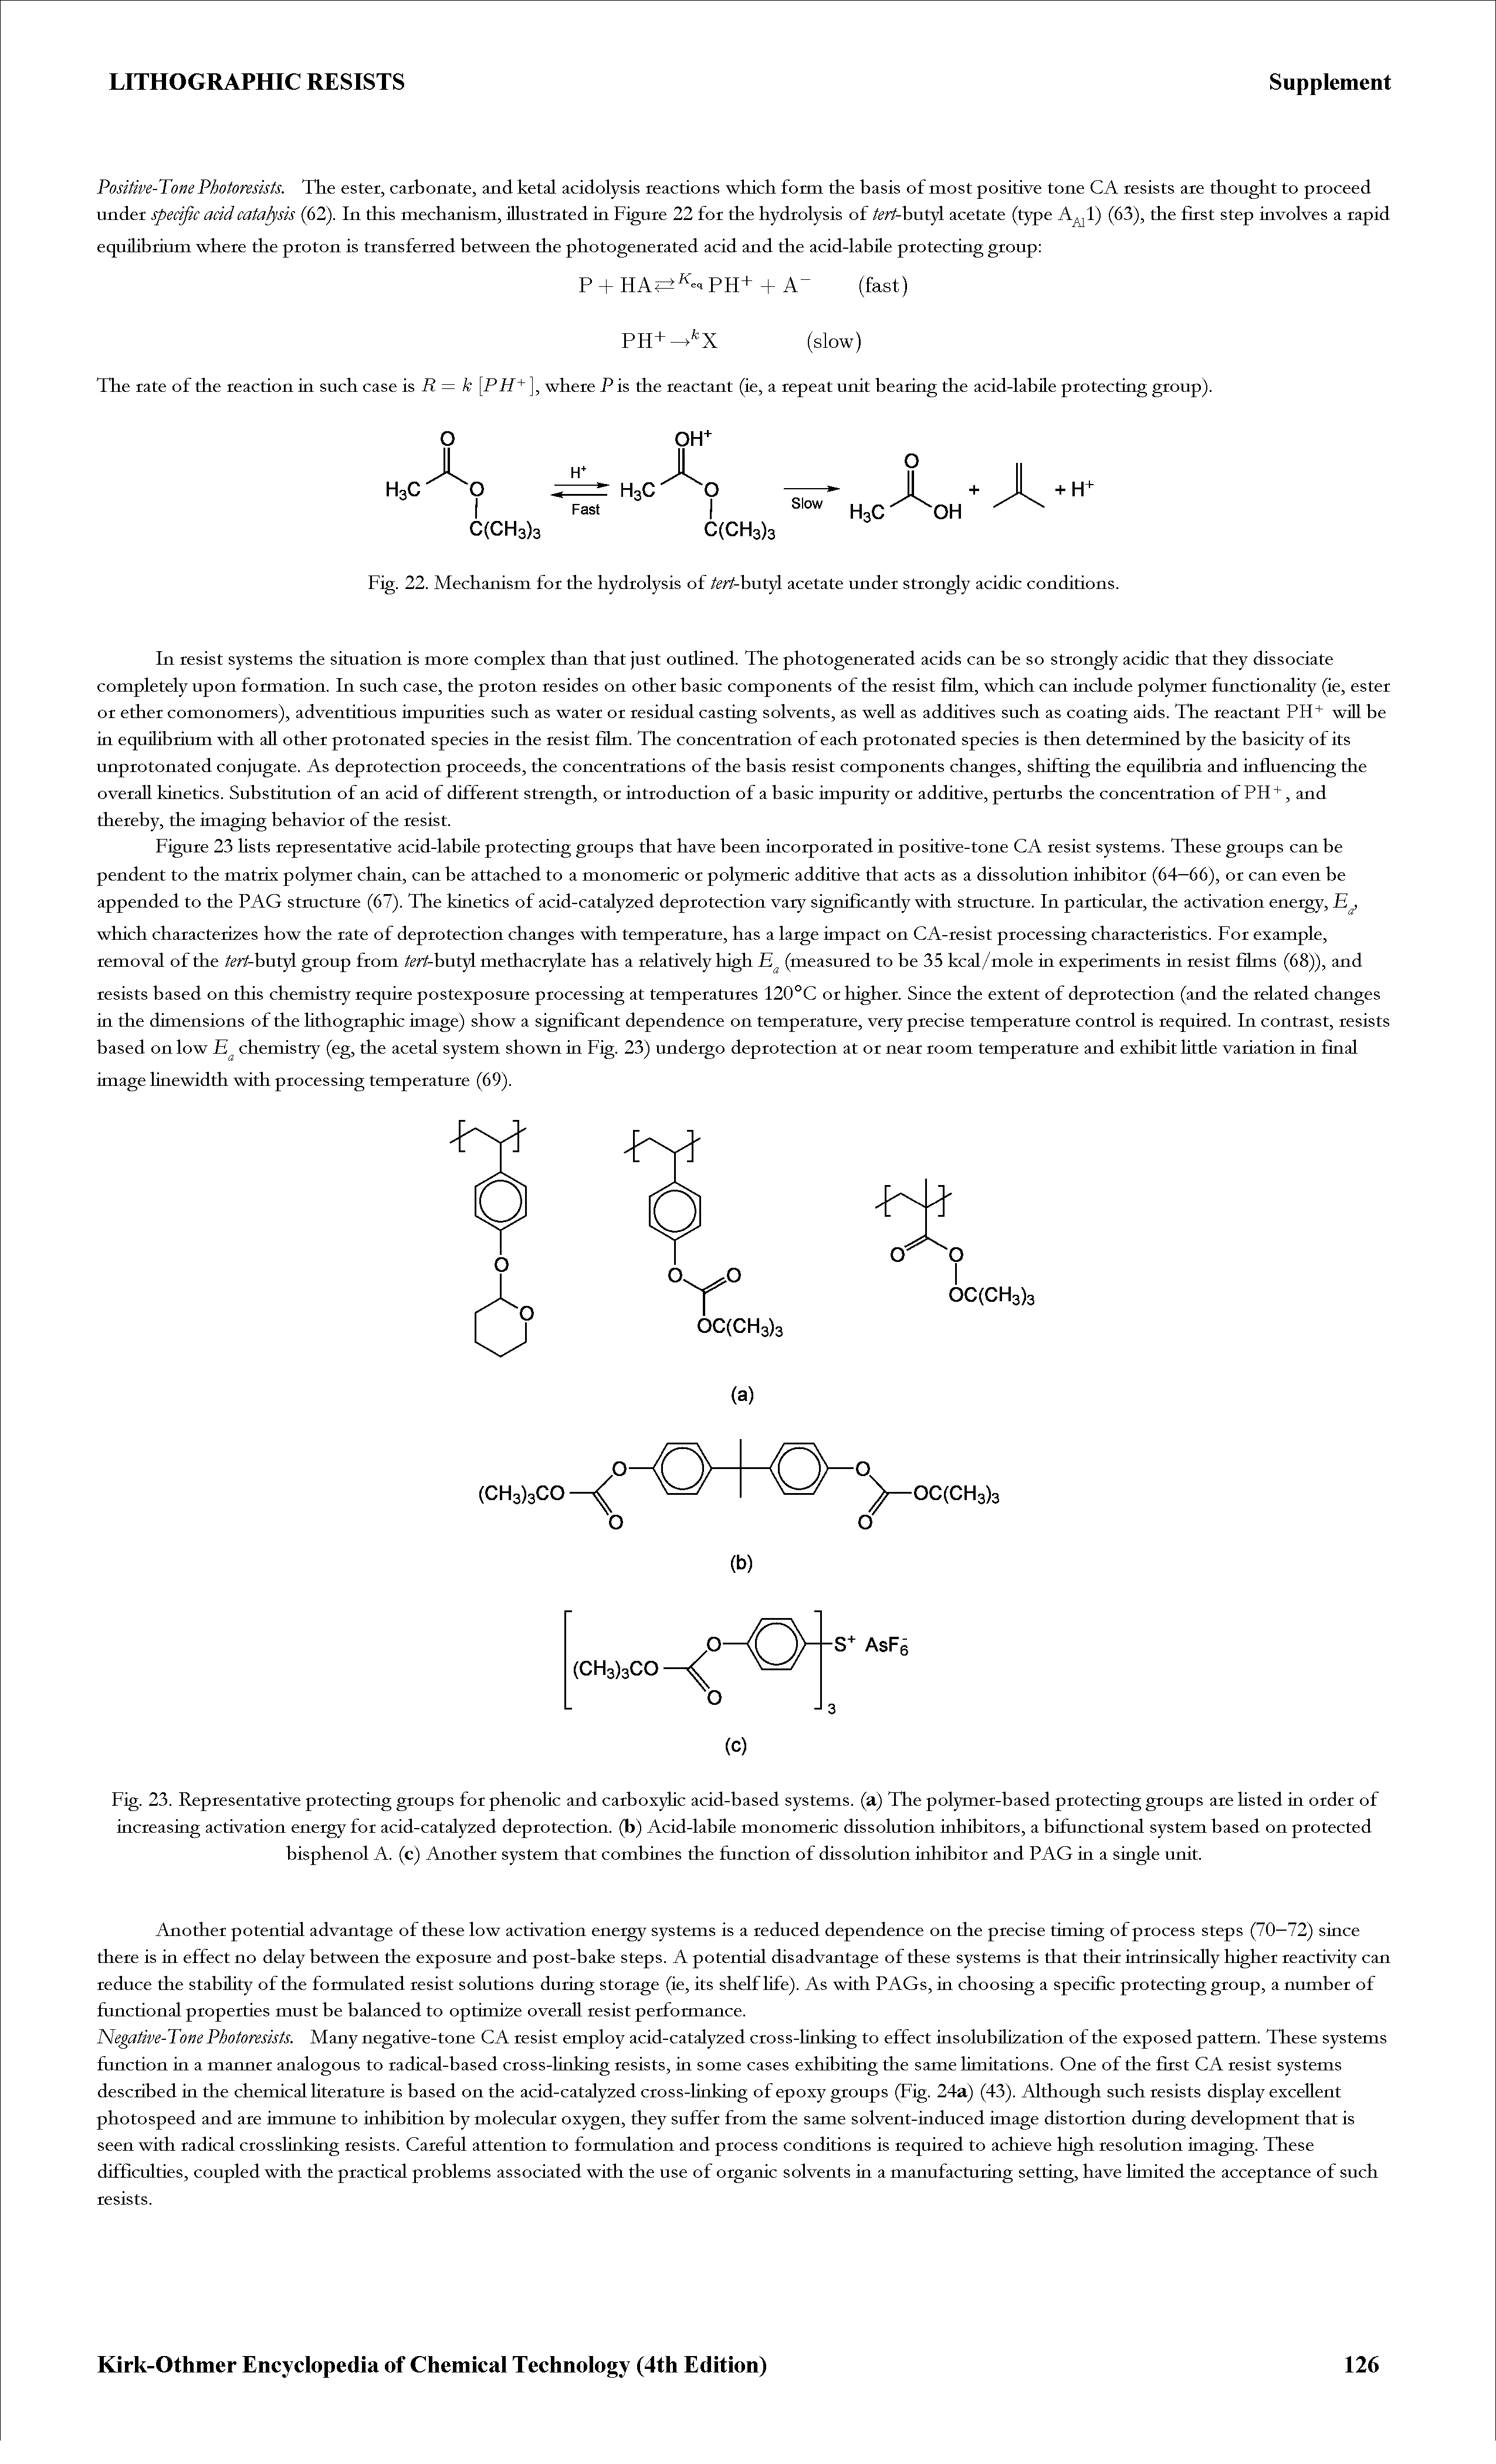 Fig. 23. Representative protecting groups for phenolic and carboxylic acid-based systems, (a) The polymer-based protecting groups are fisted in order of increasing activation energy for acid-catalyzed deprotection, (b) Acid-labile monomeric dissolution inhibitors, a bifunctional system based on protected bisphenol A. (c) Another system that combines the function of dissolution inhibitor and PAG in a single unit.